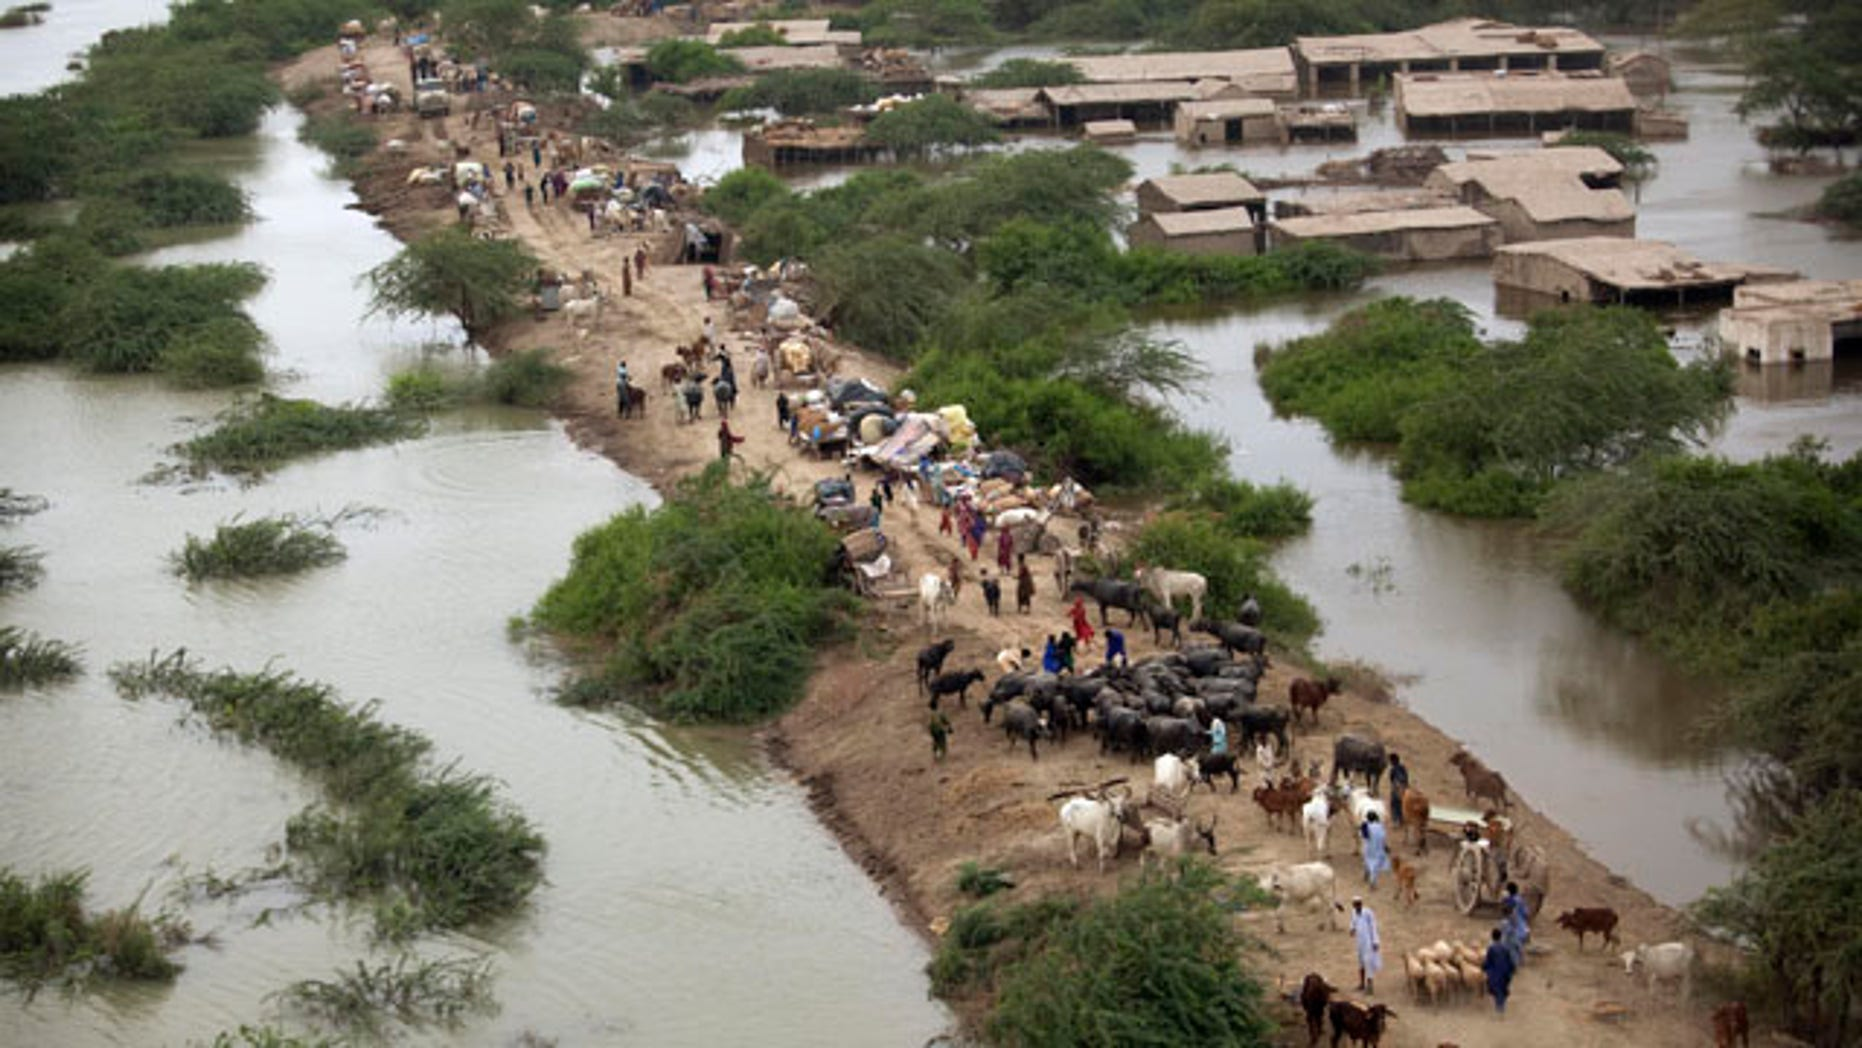 August 29: Pakistani's displaced by flooding take shelter on the higher ground of an embankment near the flooded Indus River, outside Thatta, Sindh Province, southern Pakistan. (AP)